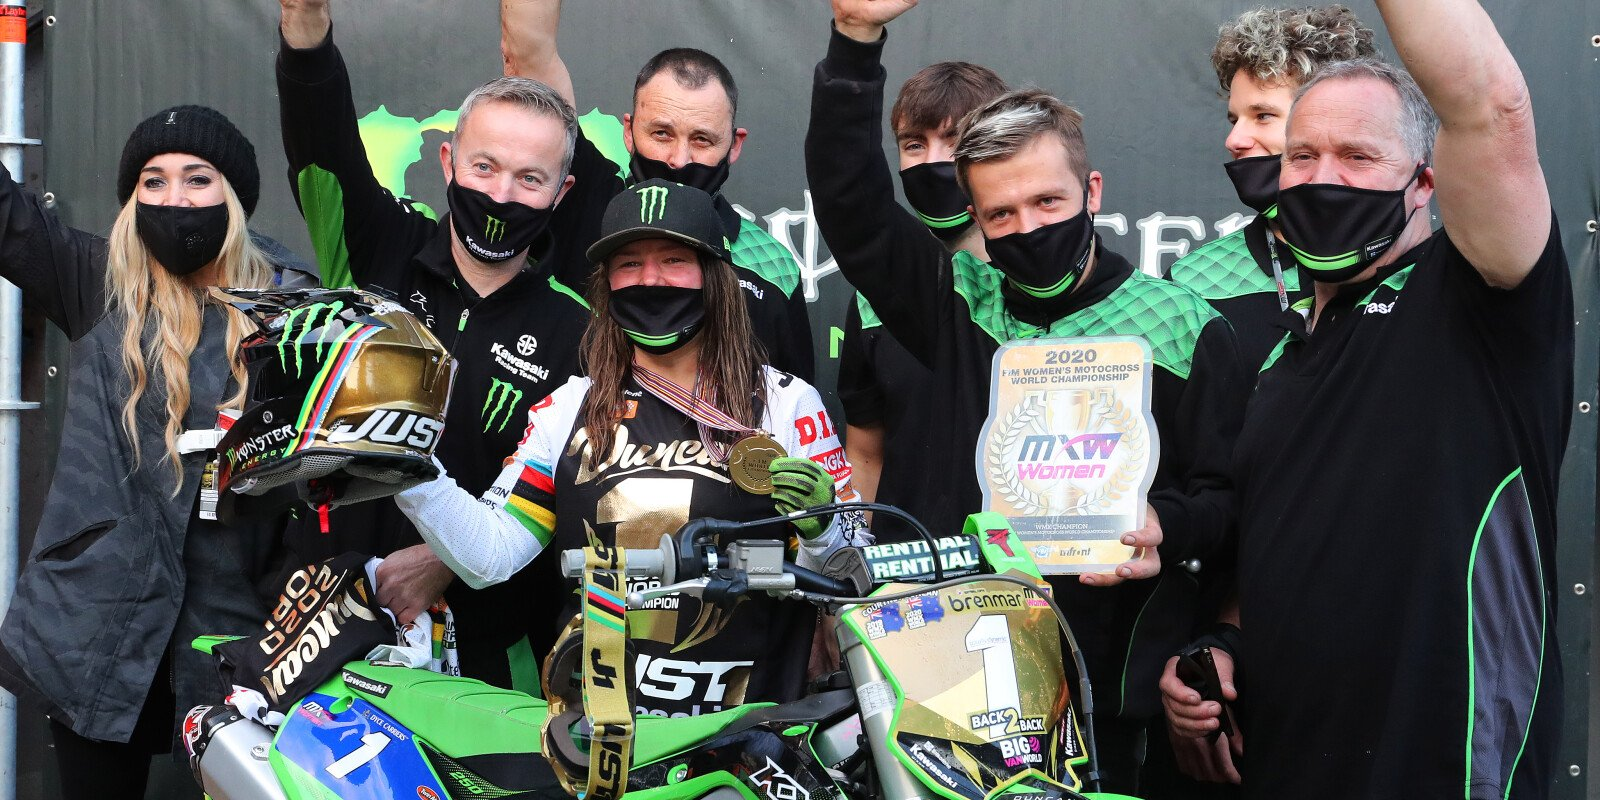 Images of Courtney Duncan winning the 2020 WMX title